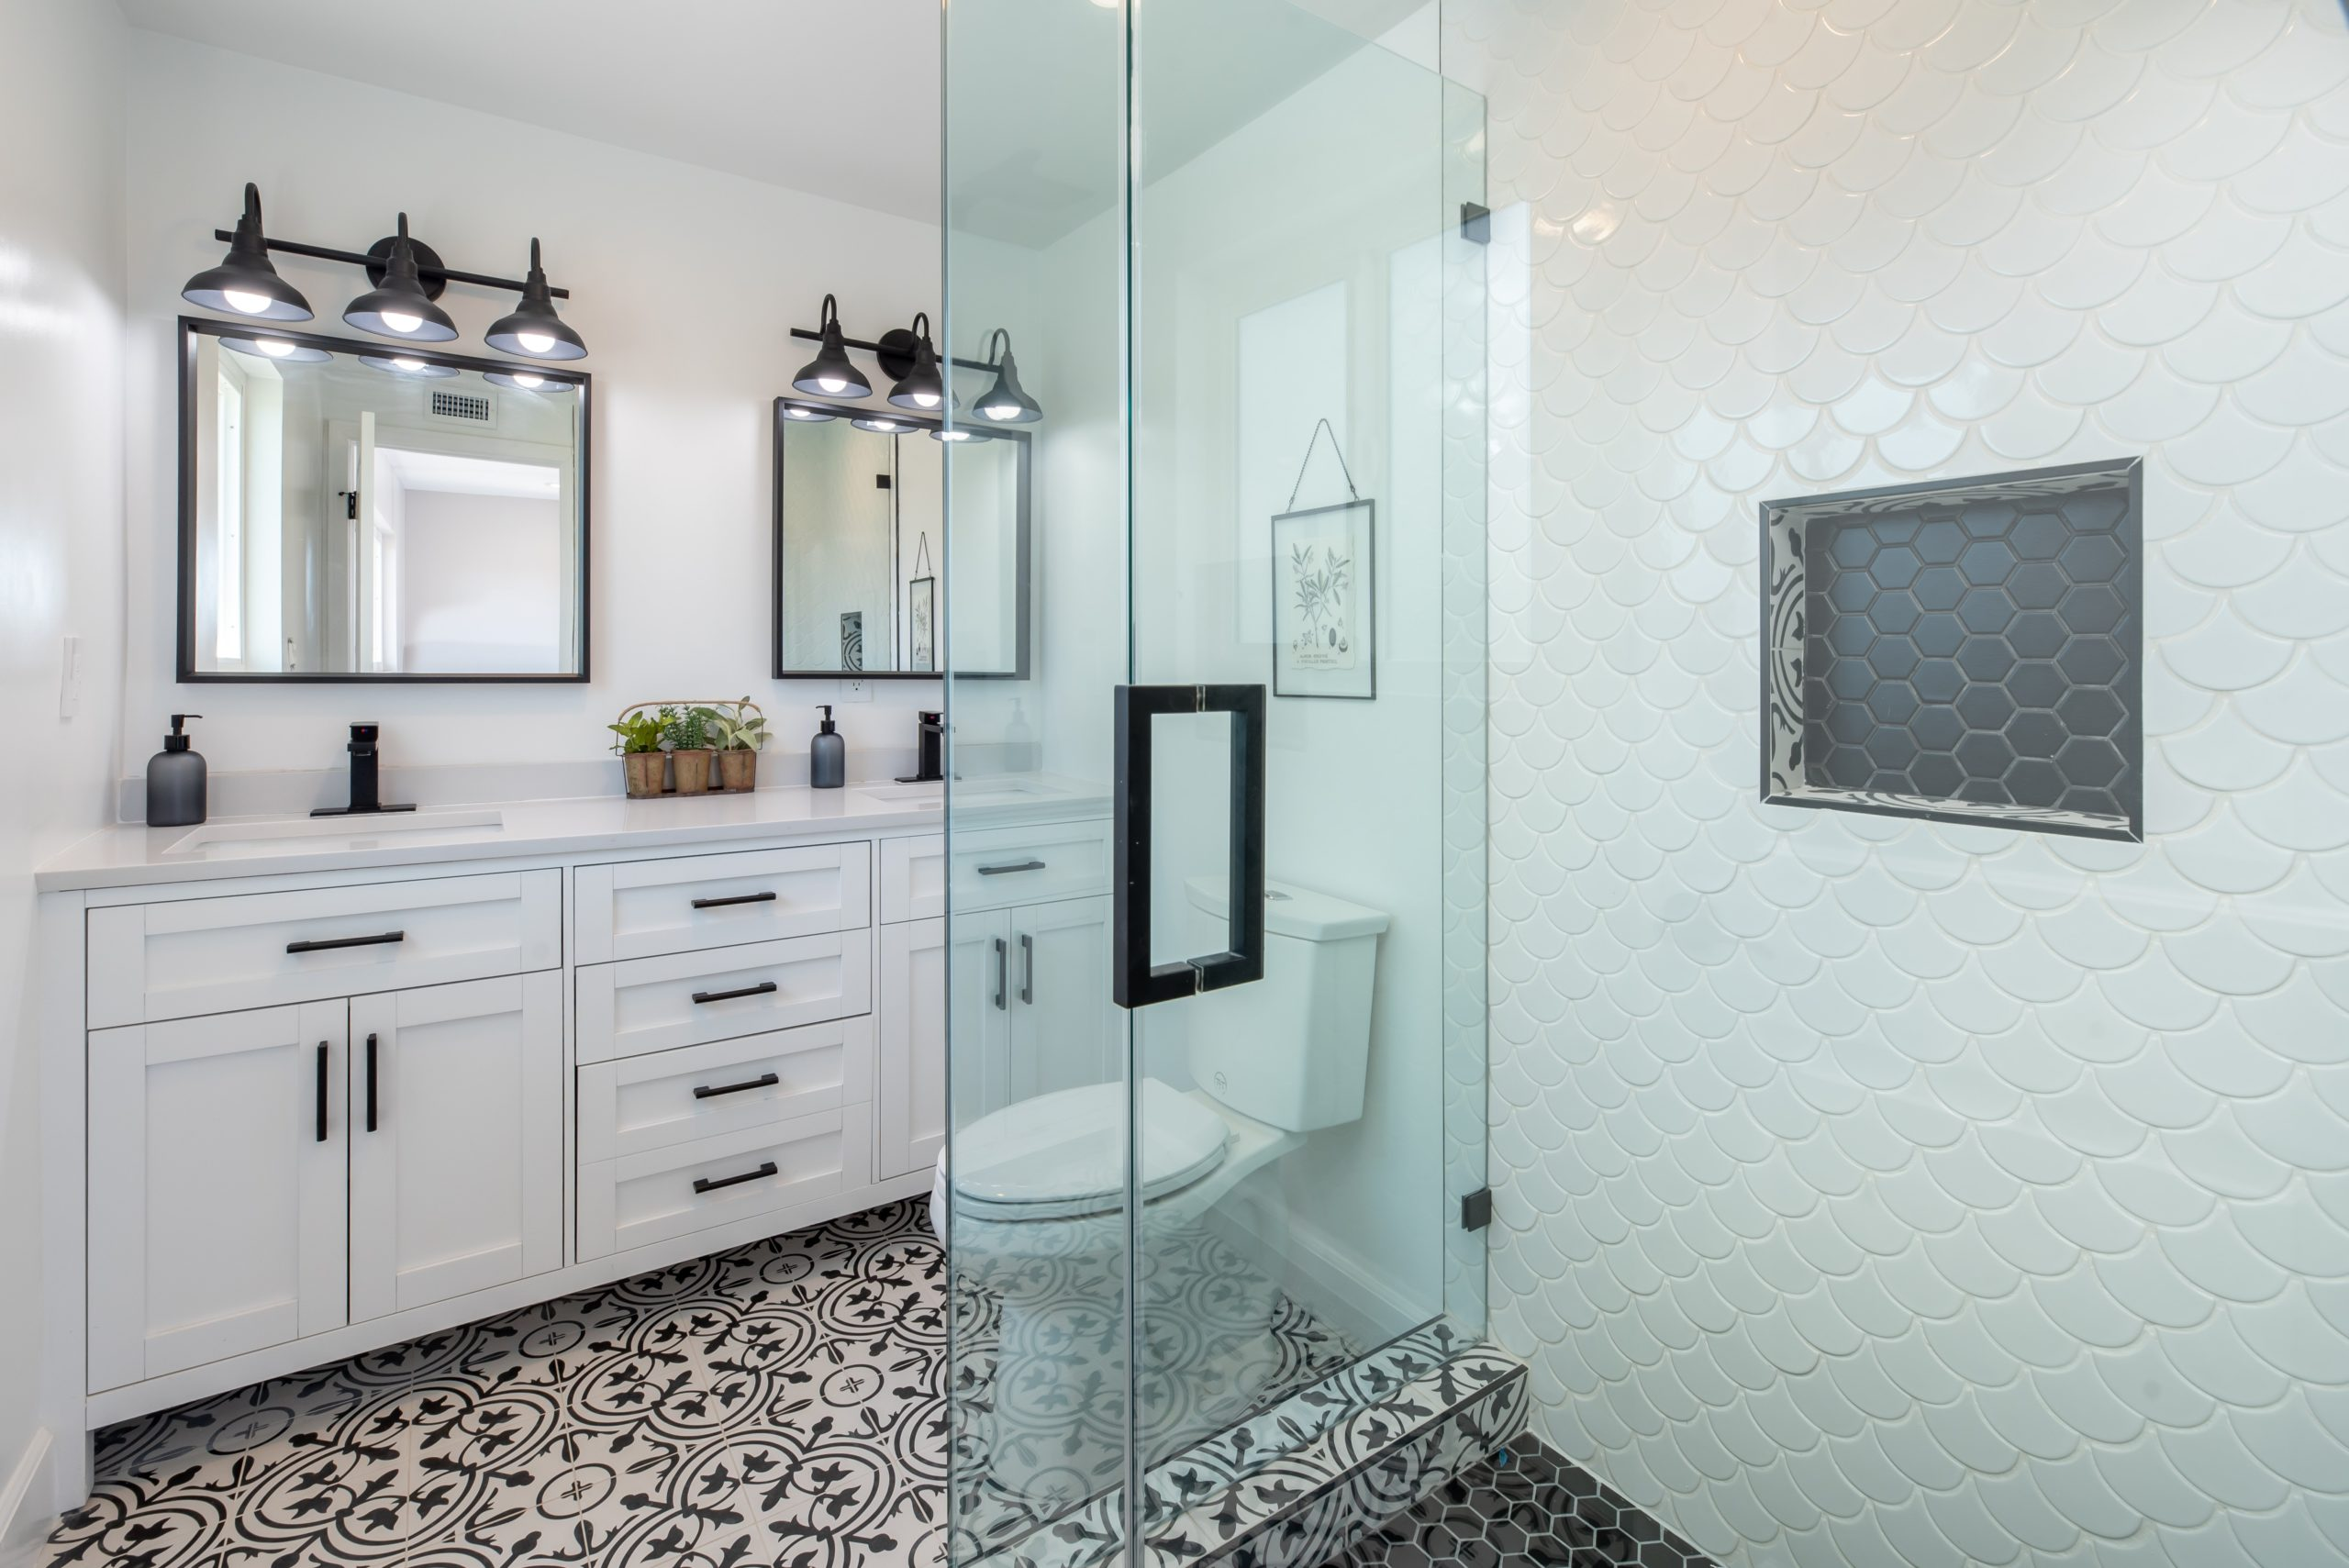 11 Bathroom Remodel Ideas That Pay Off During House Resale